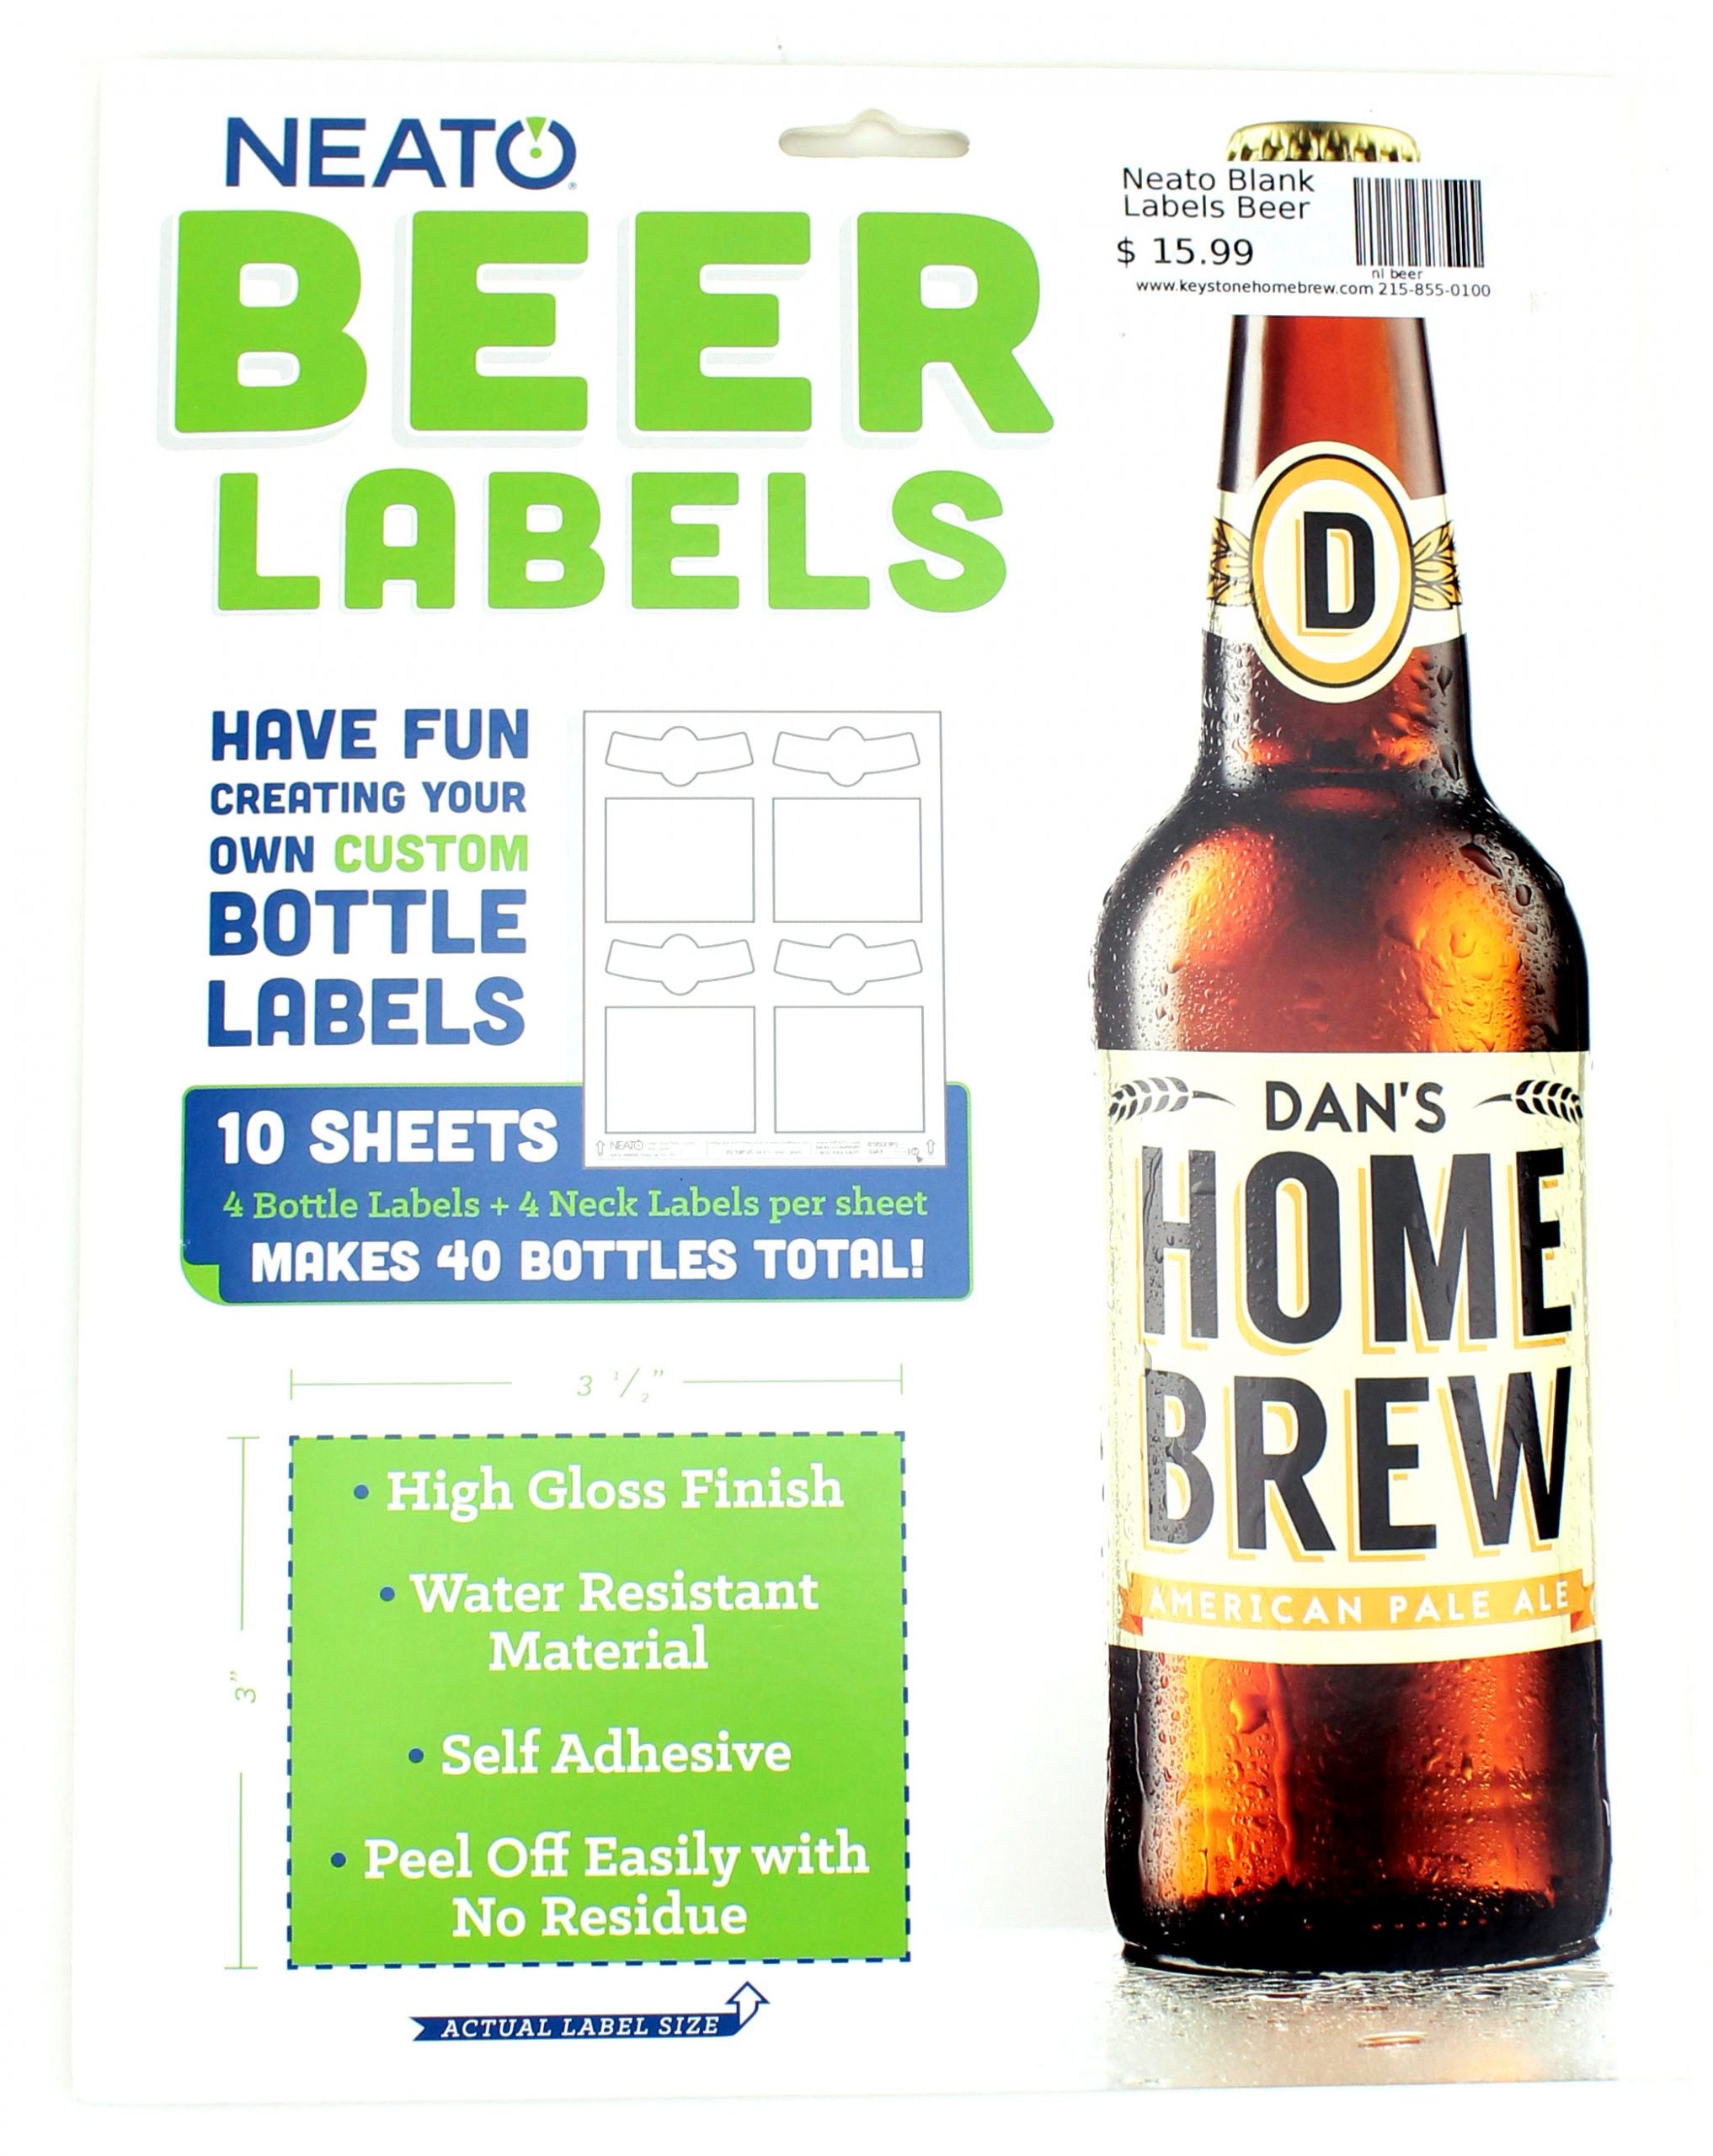 Neato Blank:Labels Beer (1)